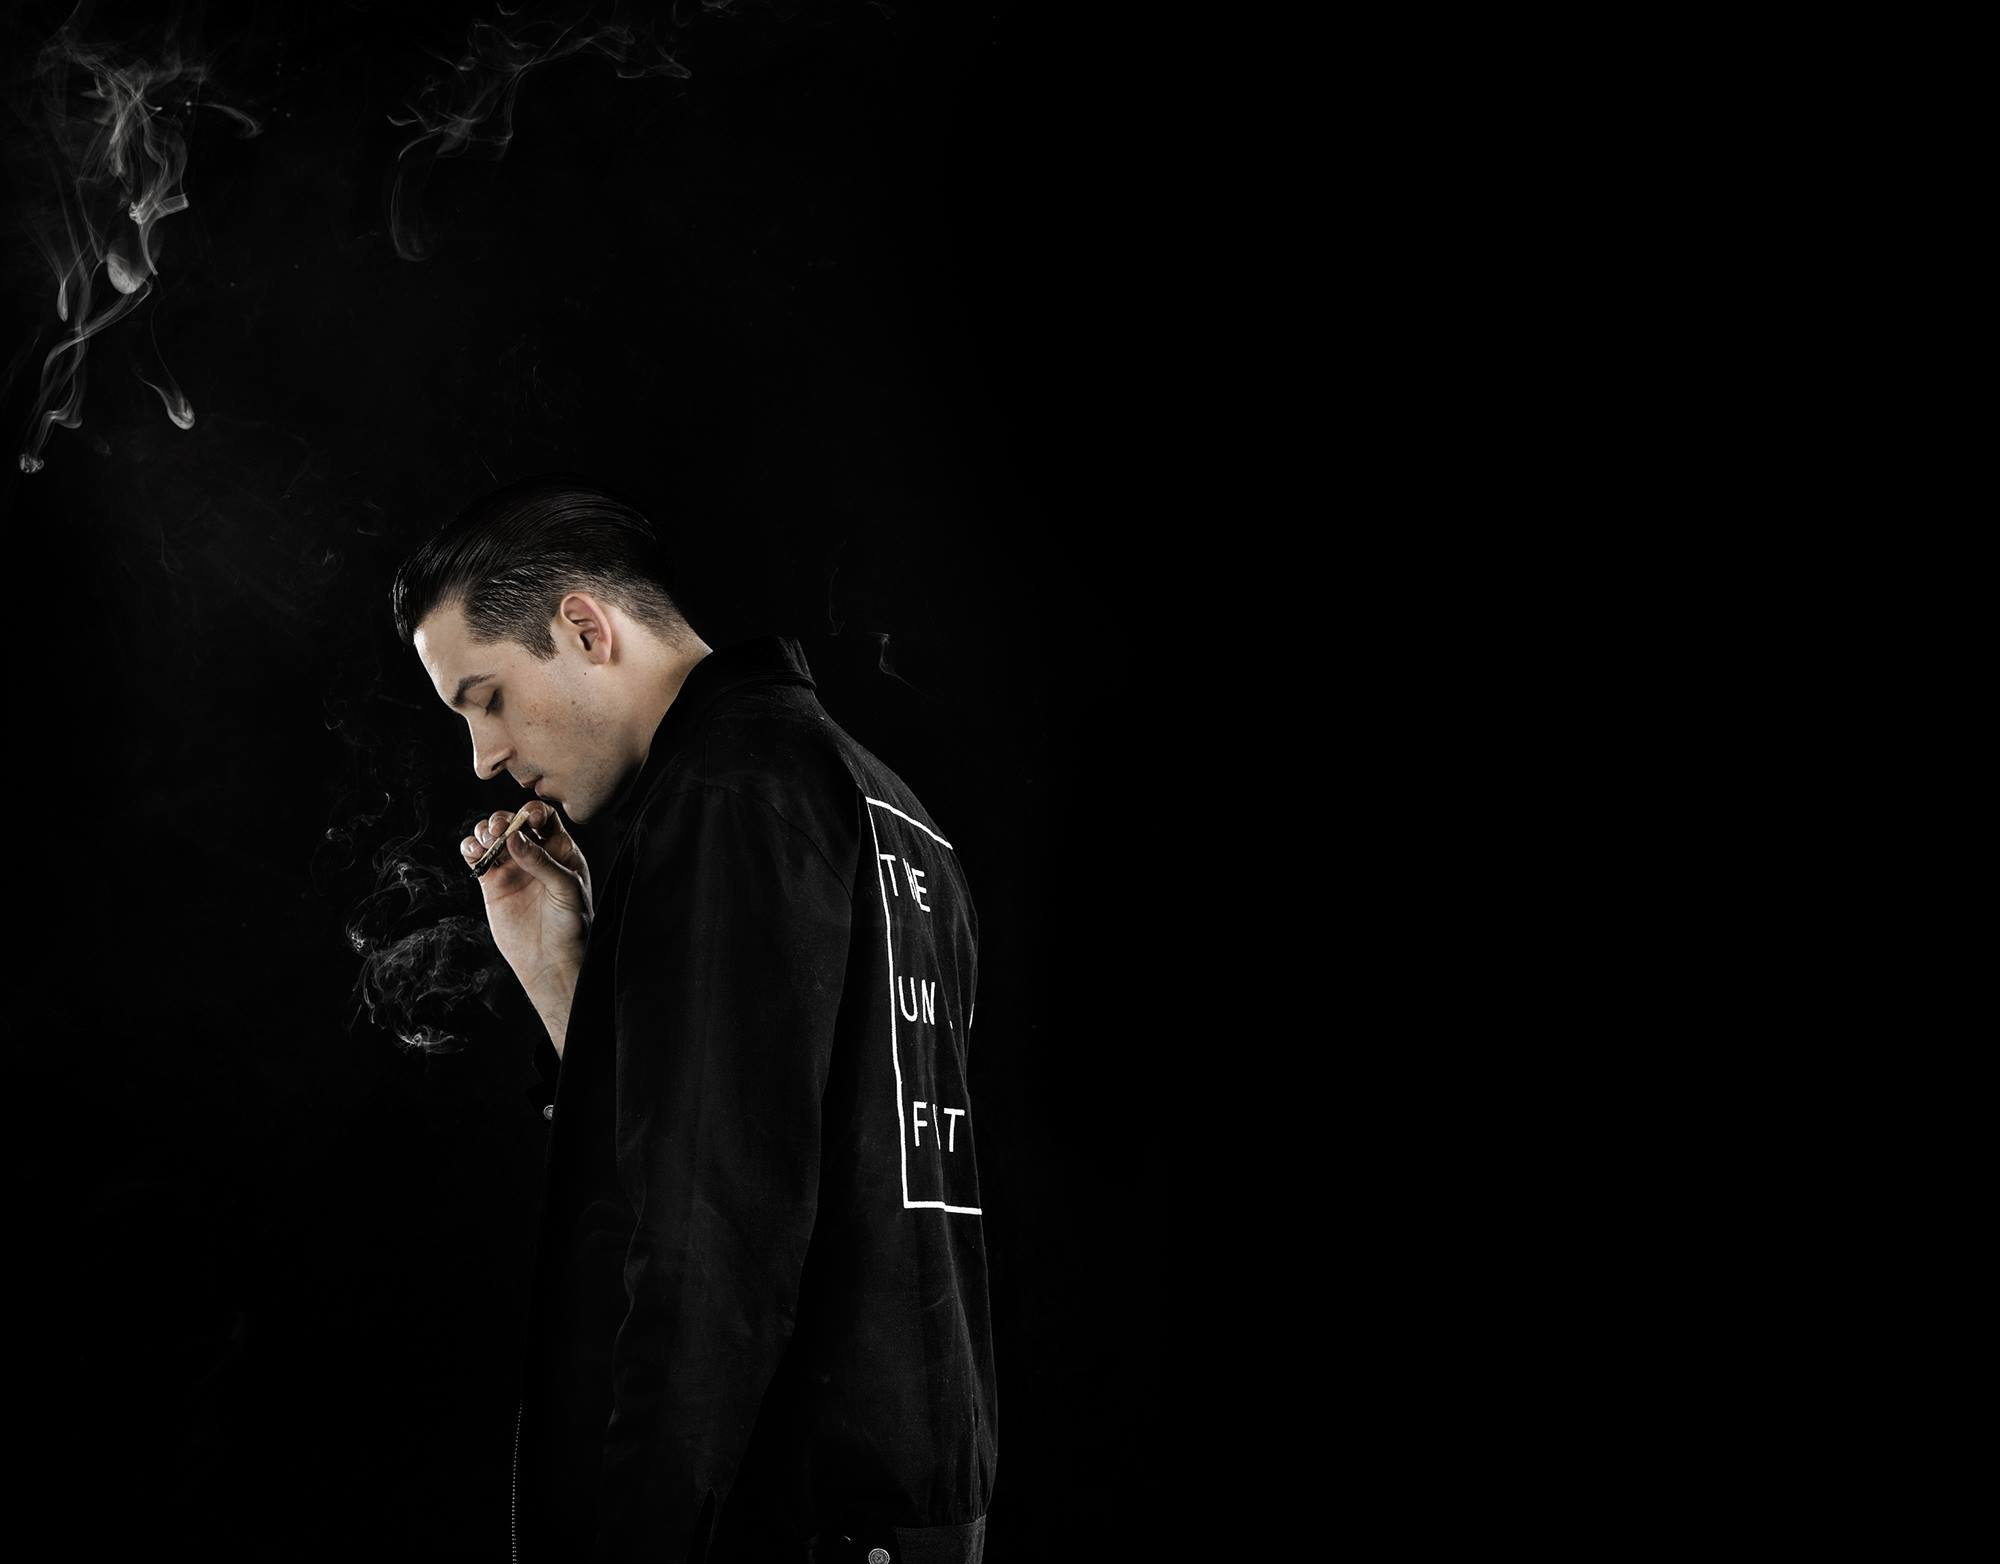 G-Eazy - Him & I Lyrics | MetroLyrics